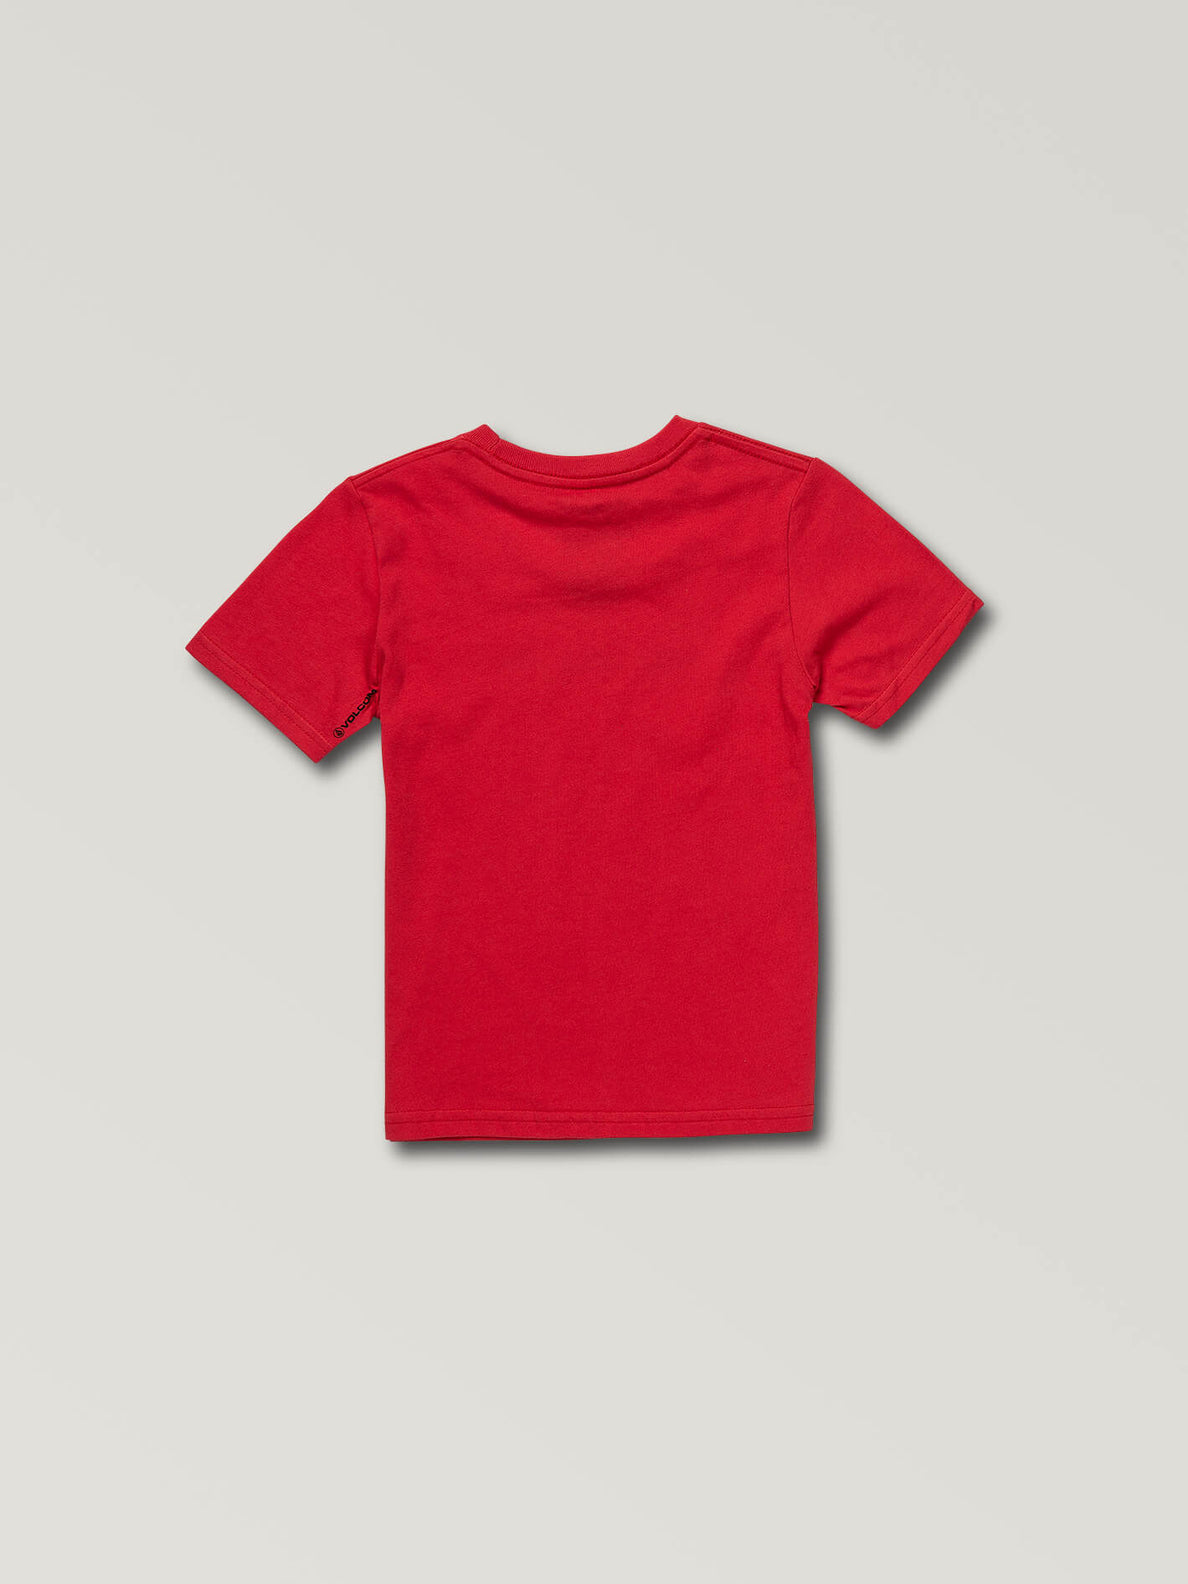 Little Boys Super Clean Short Sleeve Tee In True Red, Back View